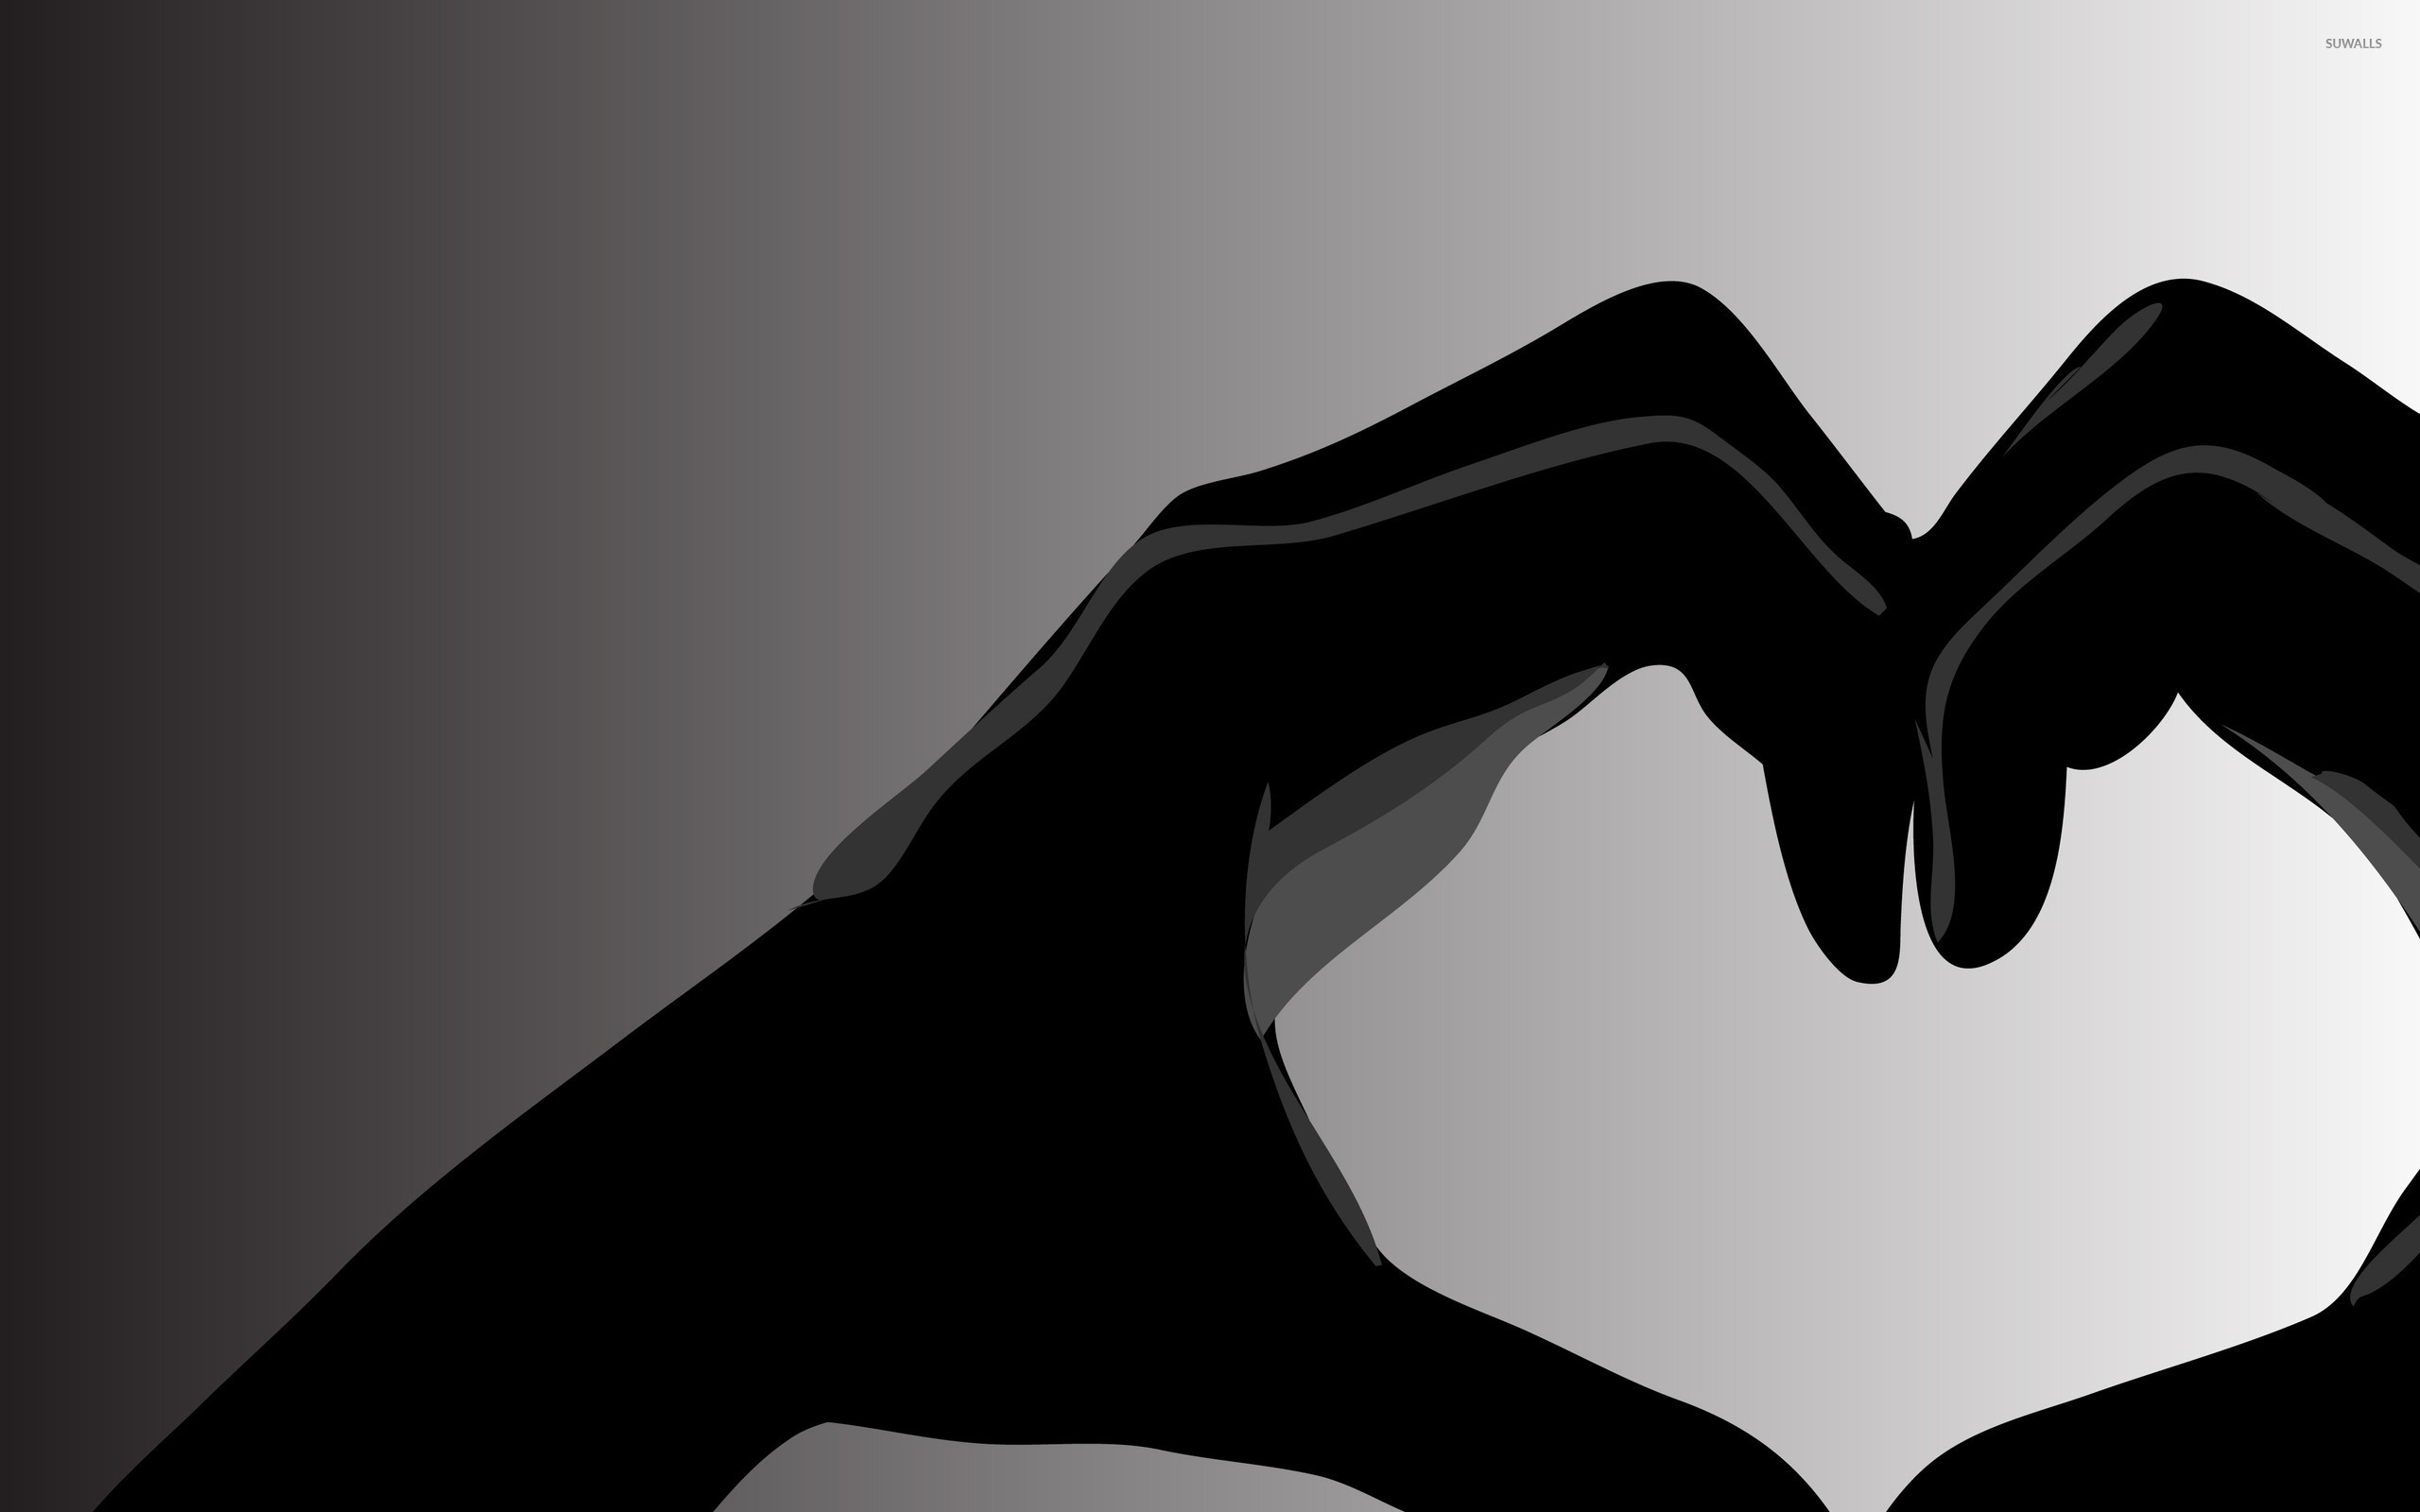 Love Wallpaper Black Background : Black love wallpaper - Vector wallpapers - #45423